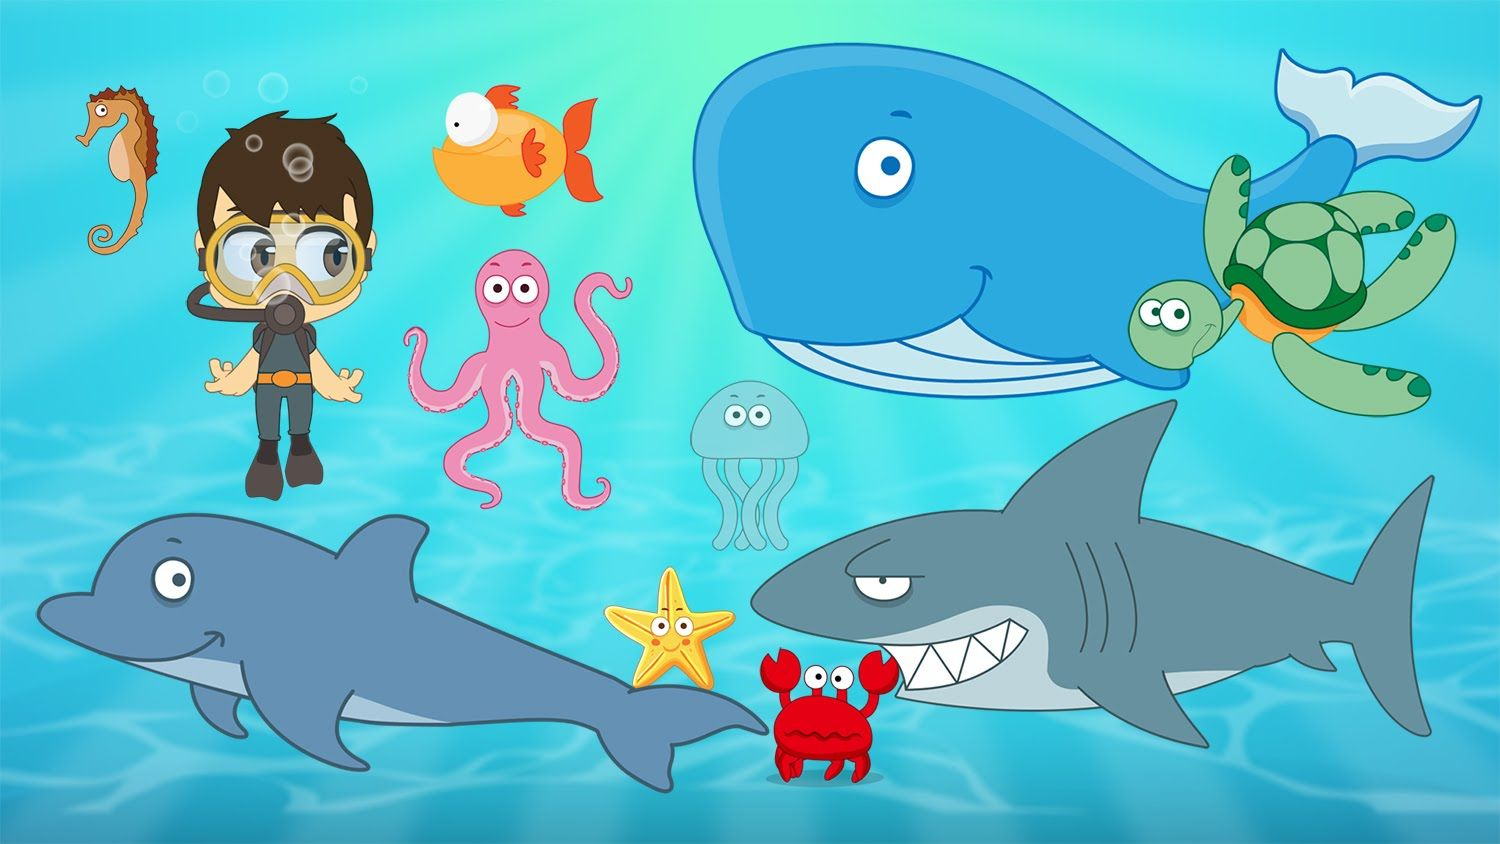 Learn Aquatic Animals For Kids In Arabic تعليم حيوانات البحر للاطفال باللغة العربية Learning Arabic Animals For Kids Shapes Activities